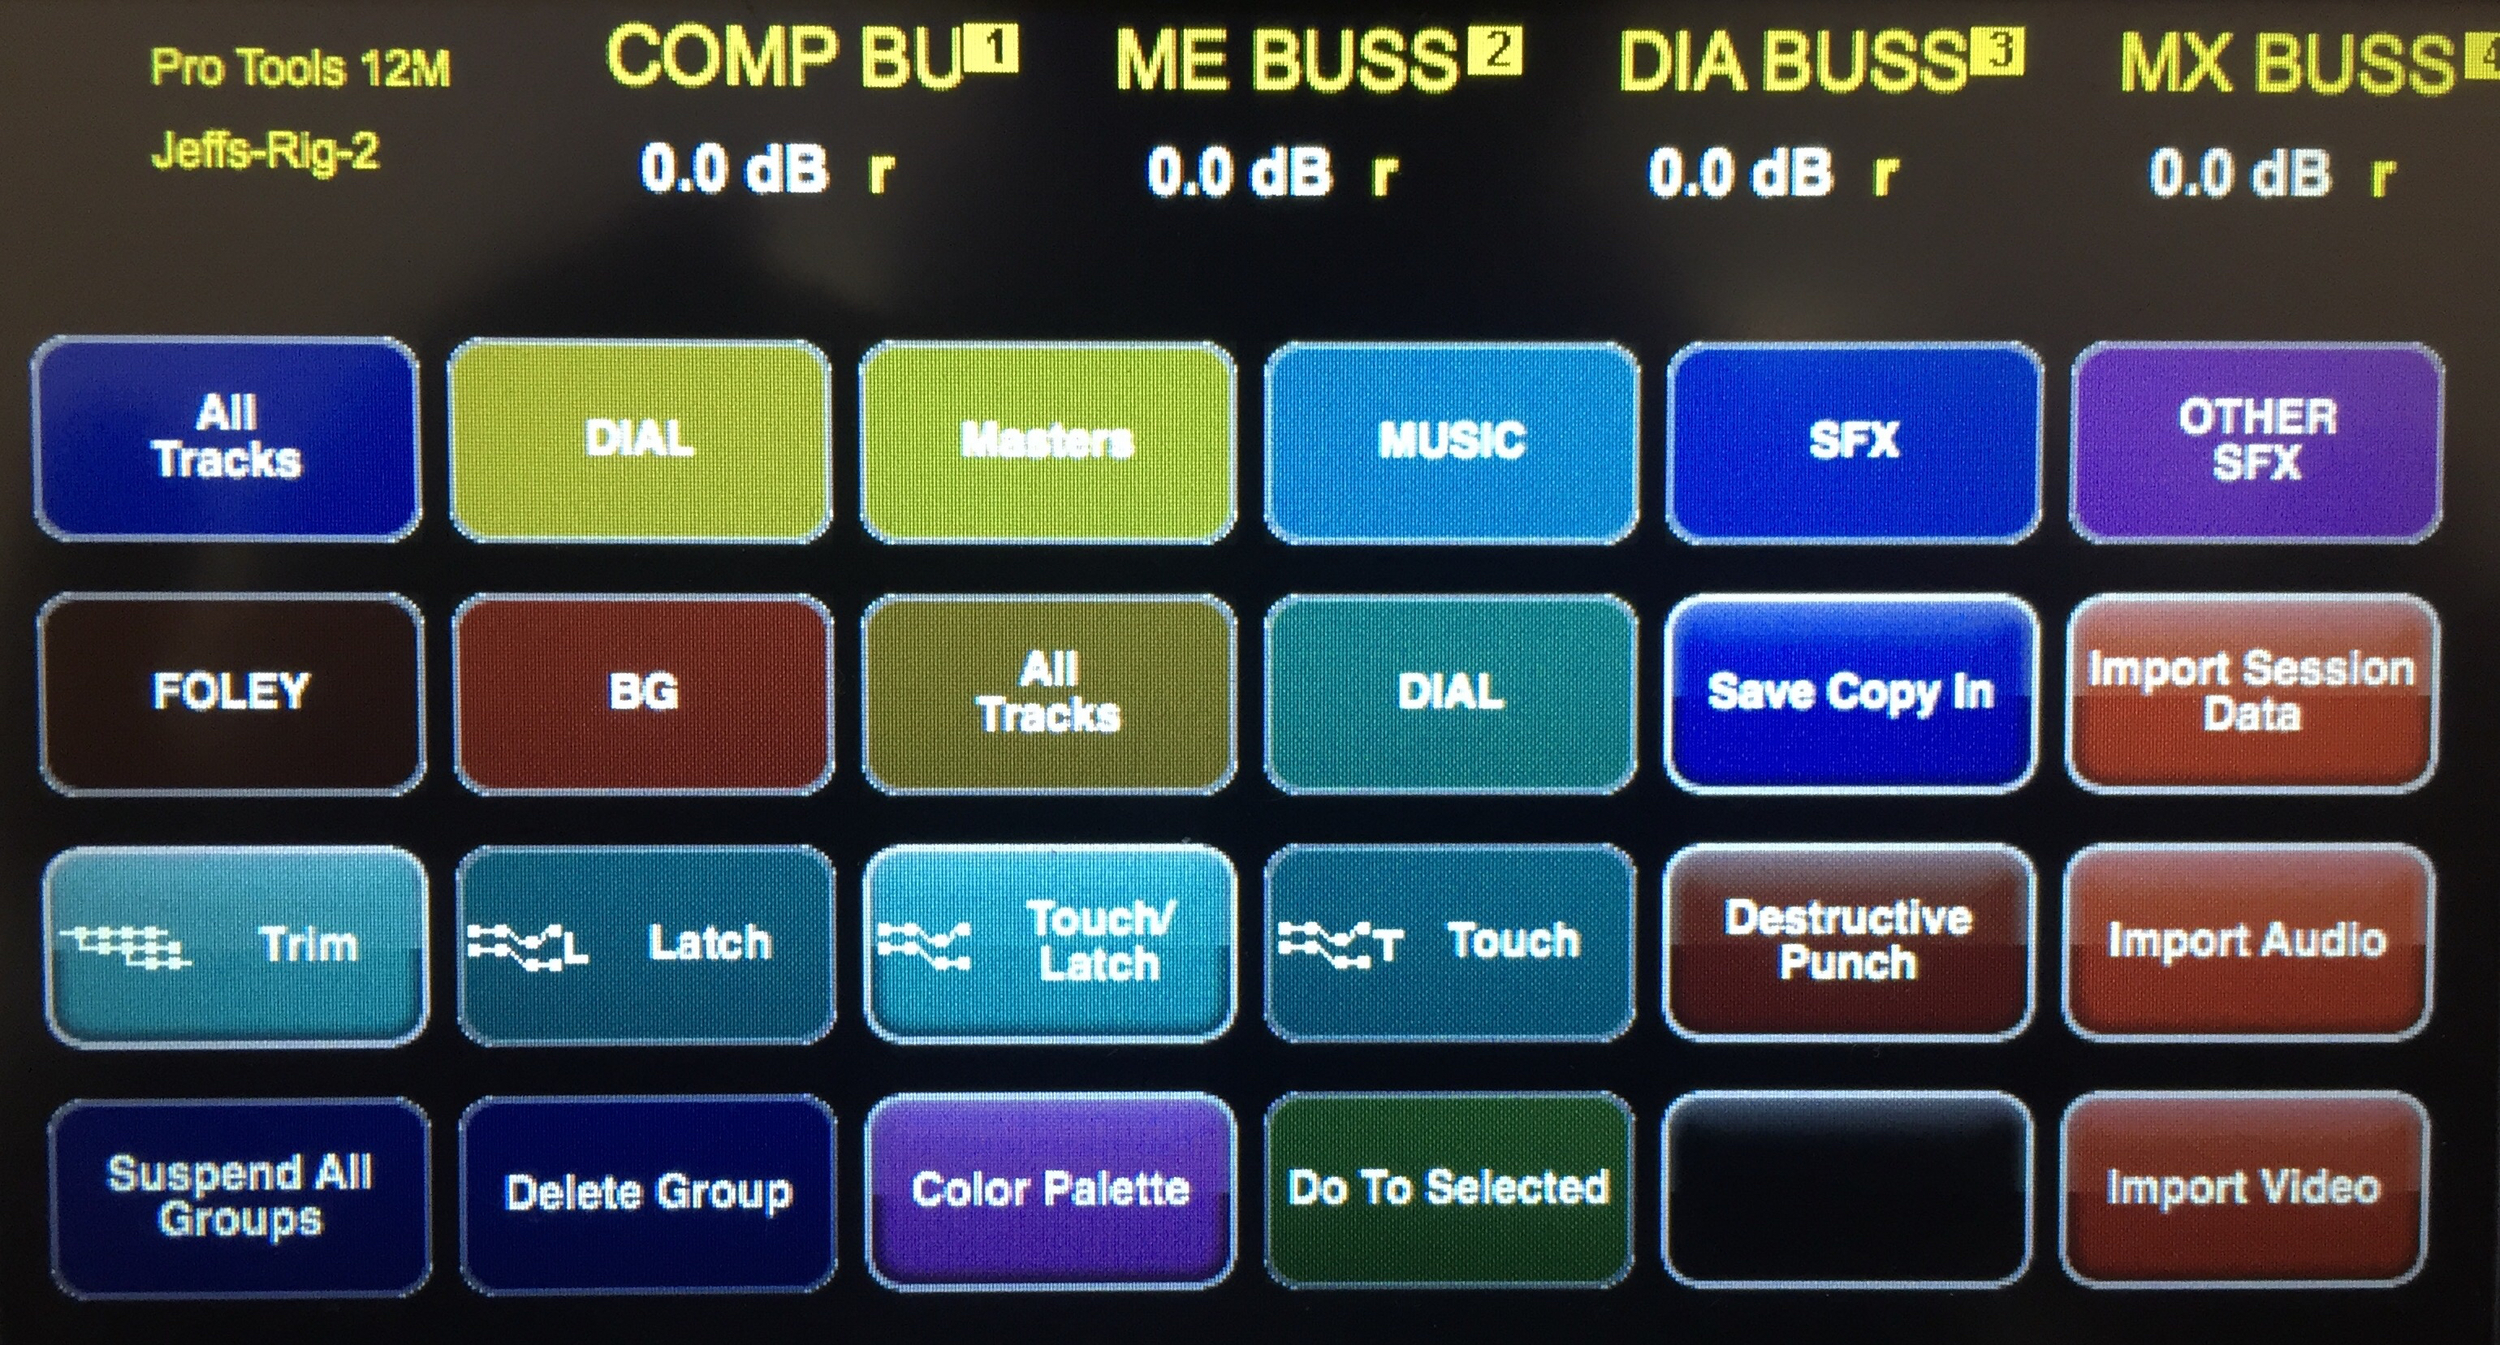 Customizing the first page of Touch buttons places all my favorite commands up front